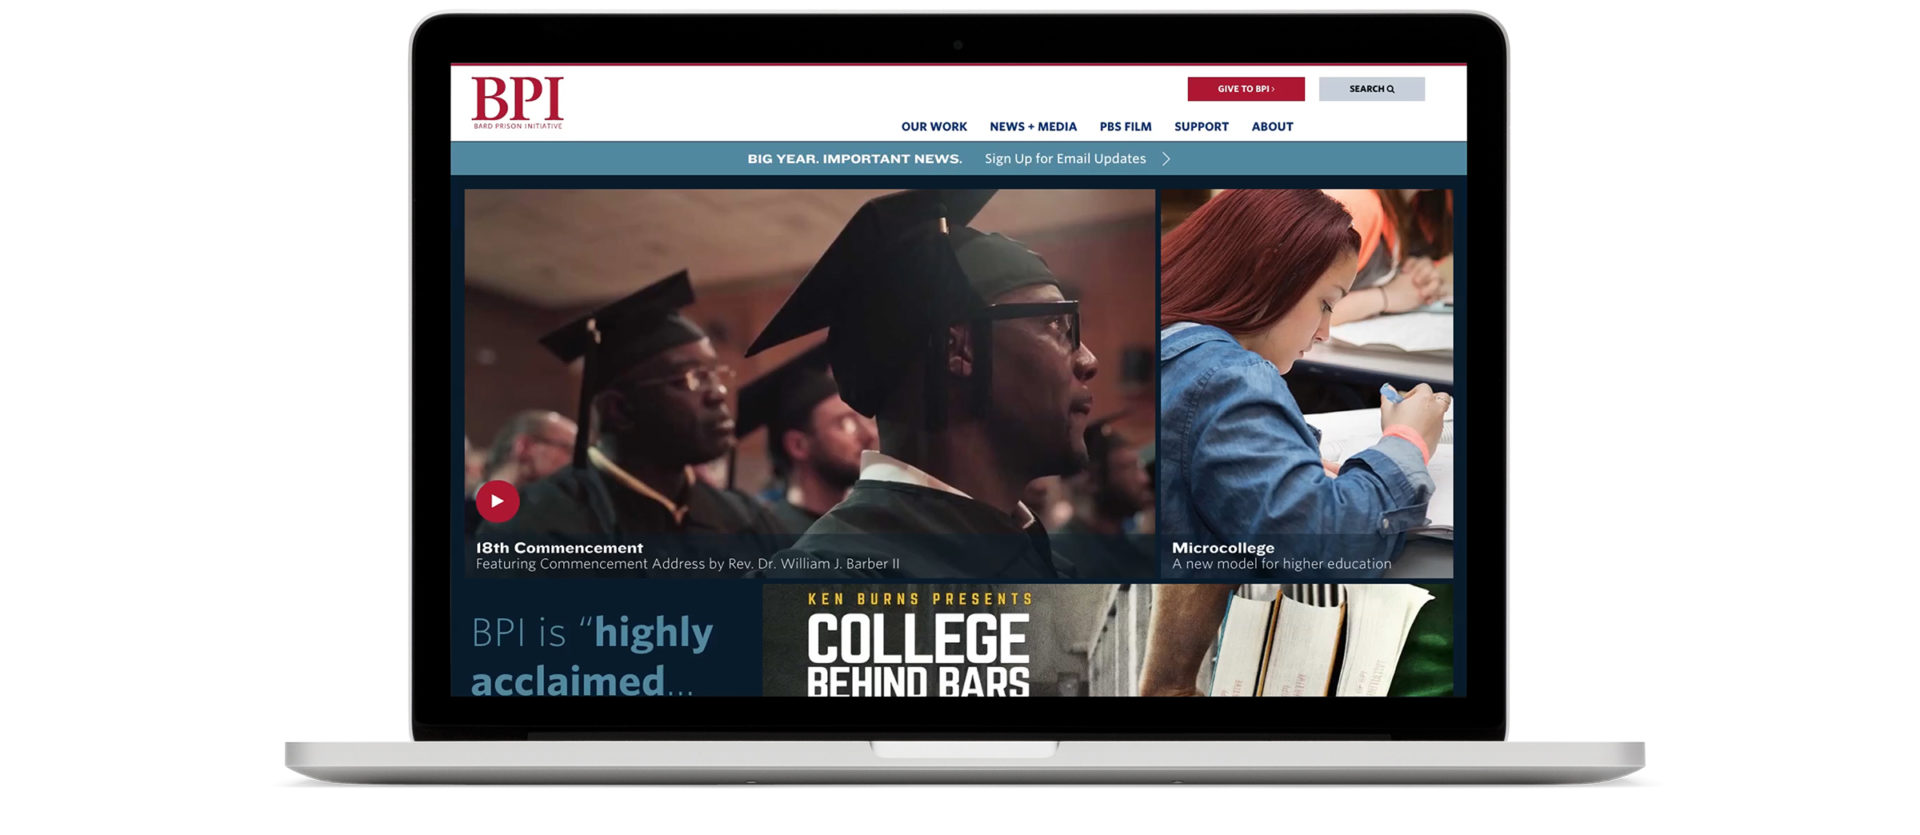 Laptop displaying BPI homepage that features an image of a commencement ceremony, a student writing at a desk, and art for the